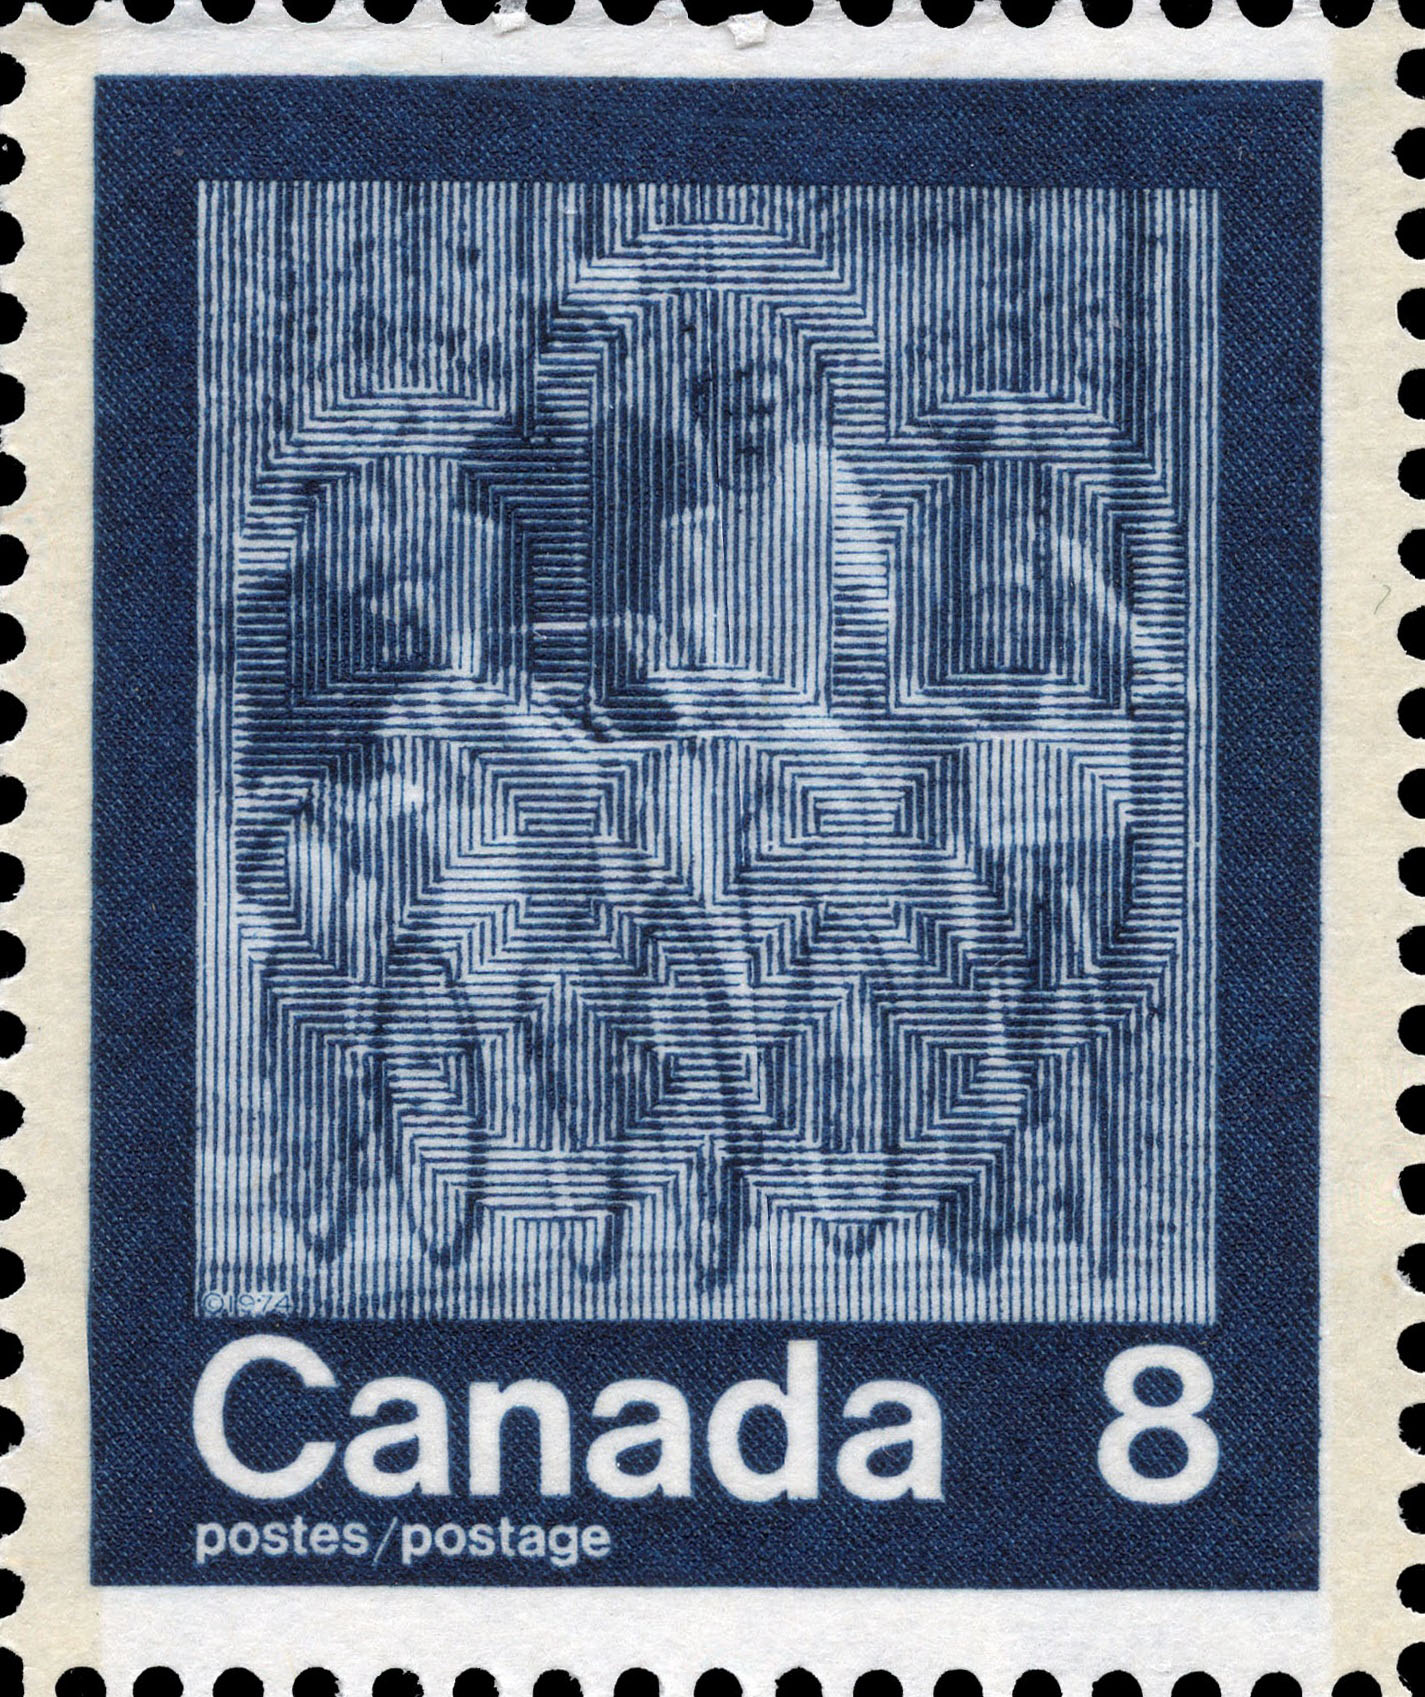 Cycling Canada Postage Stamp